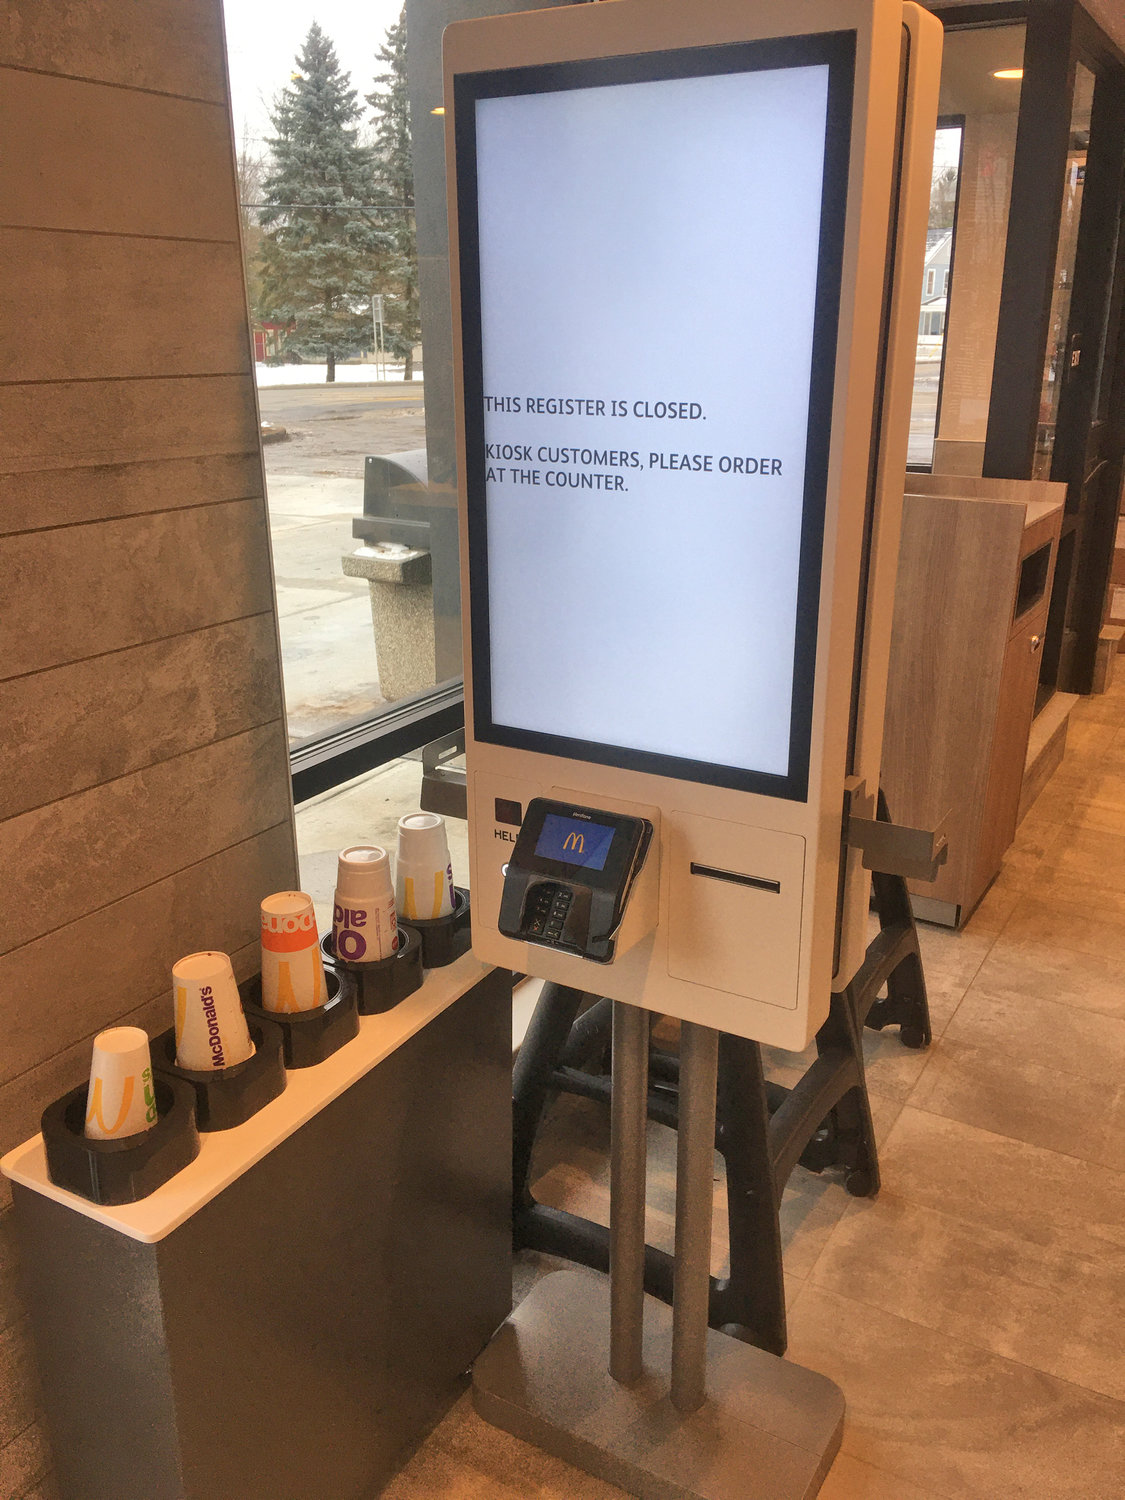 McKIOSK— Now you can order your own food at the golden arches with this new touchscreen kiosk. Just order with the picture menu, pay with the credit card keypad and your order goes right to the kitchen. Come back McSoon.